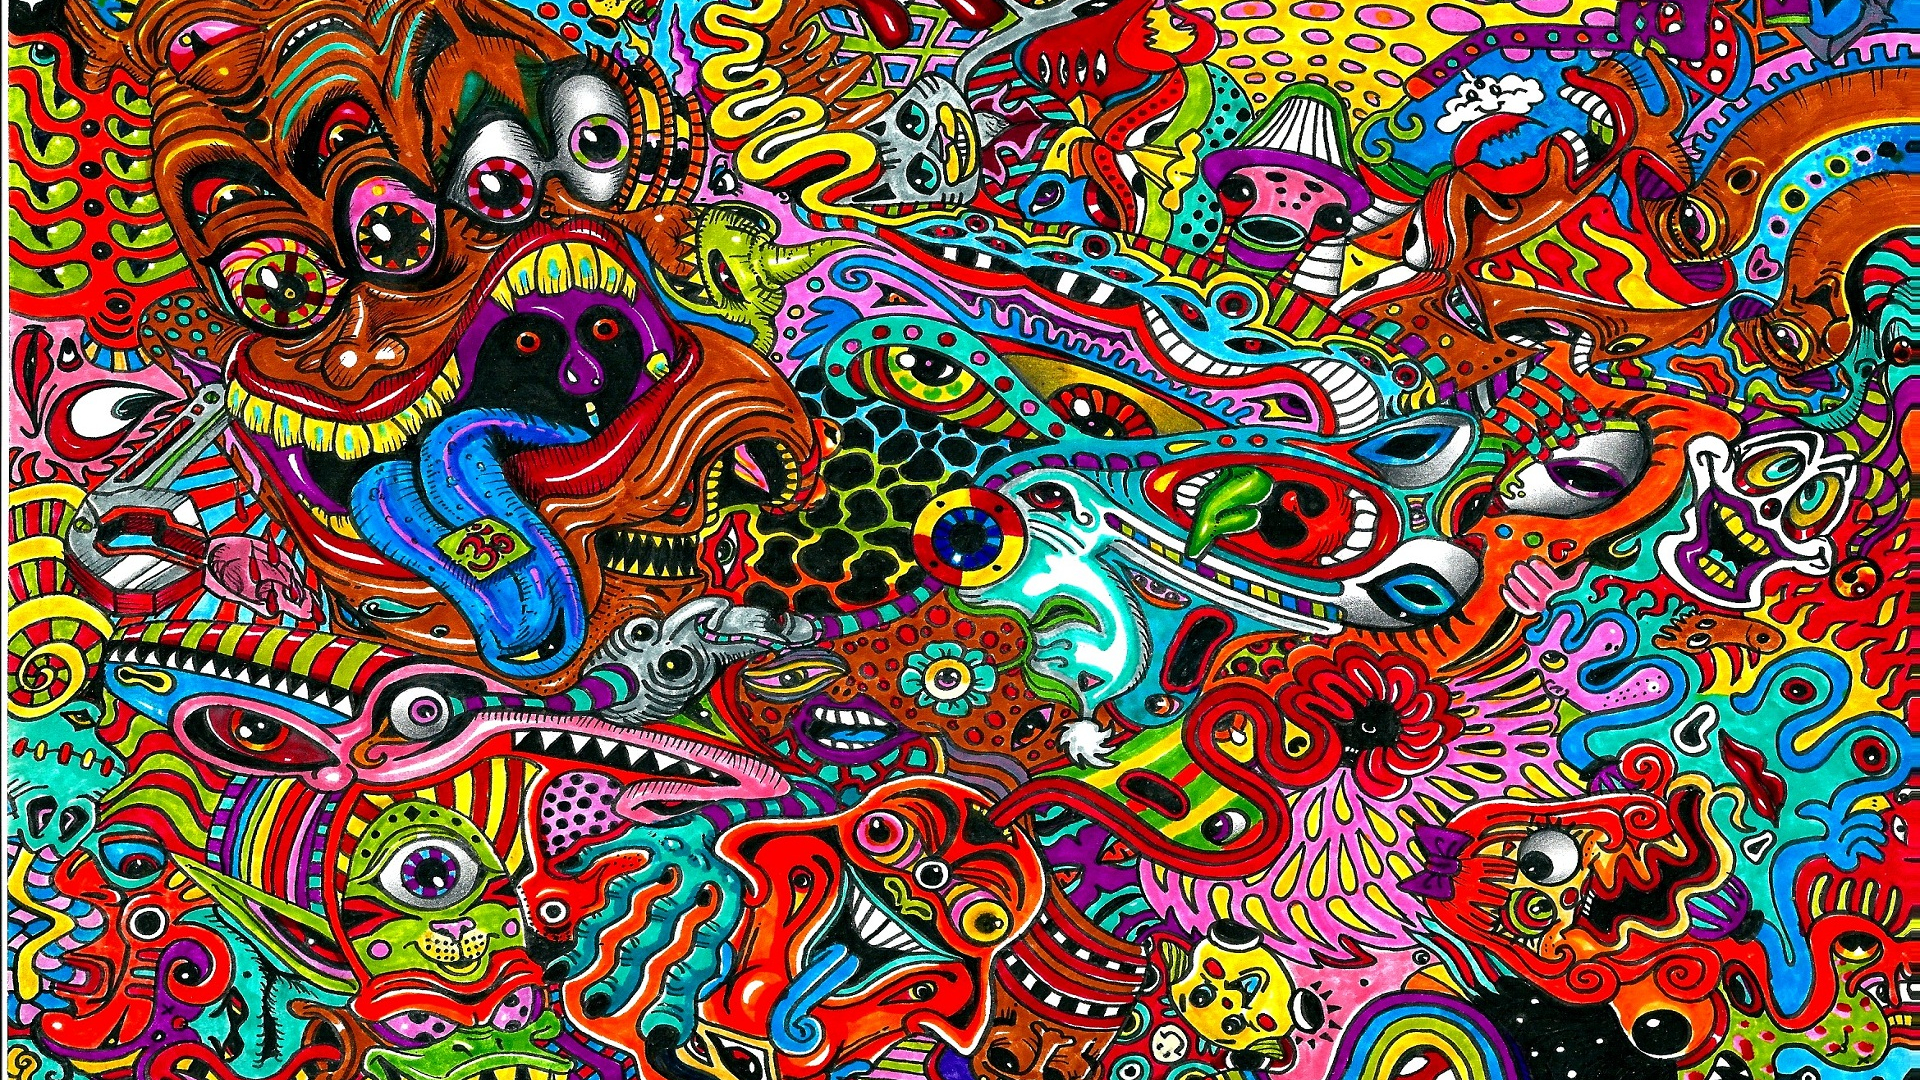 Free Download Trippy Alice In Wonderland Backgrounds Psychedelic Wallpapers 1920x1200 For Your Desktop Mobile Tablet Explore 49 Trippy Alice In Wonderland Wallpaper Trippy Alice In Wonderland Wallpaper Alice In